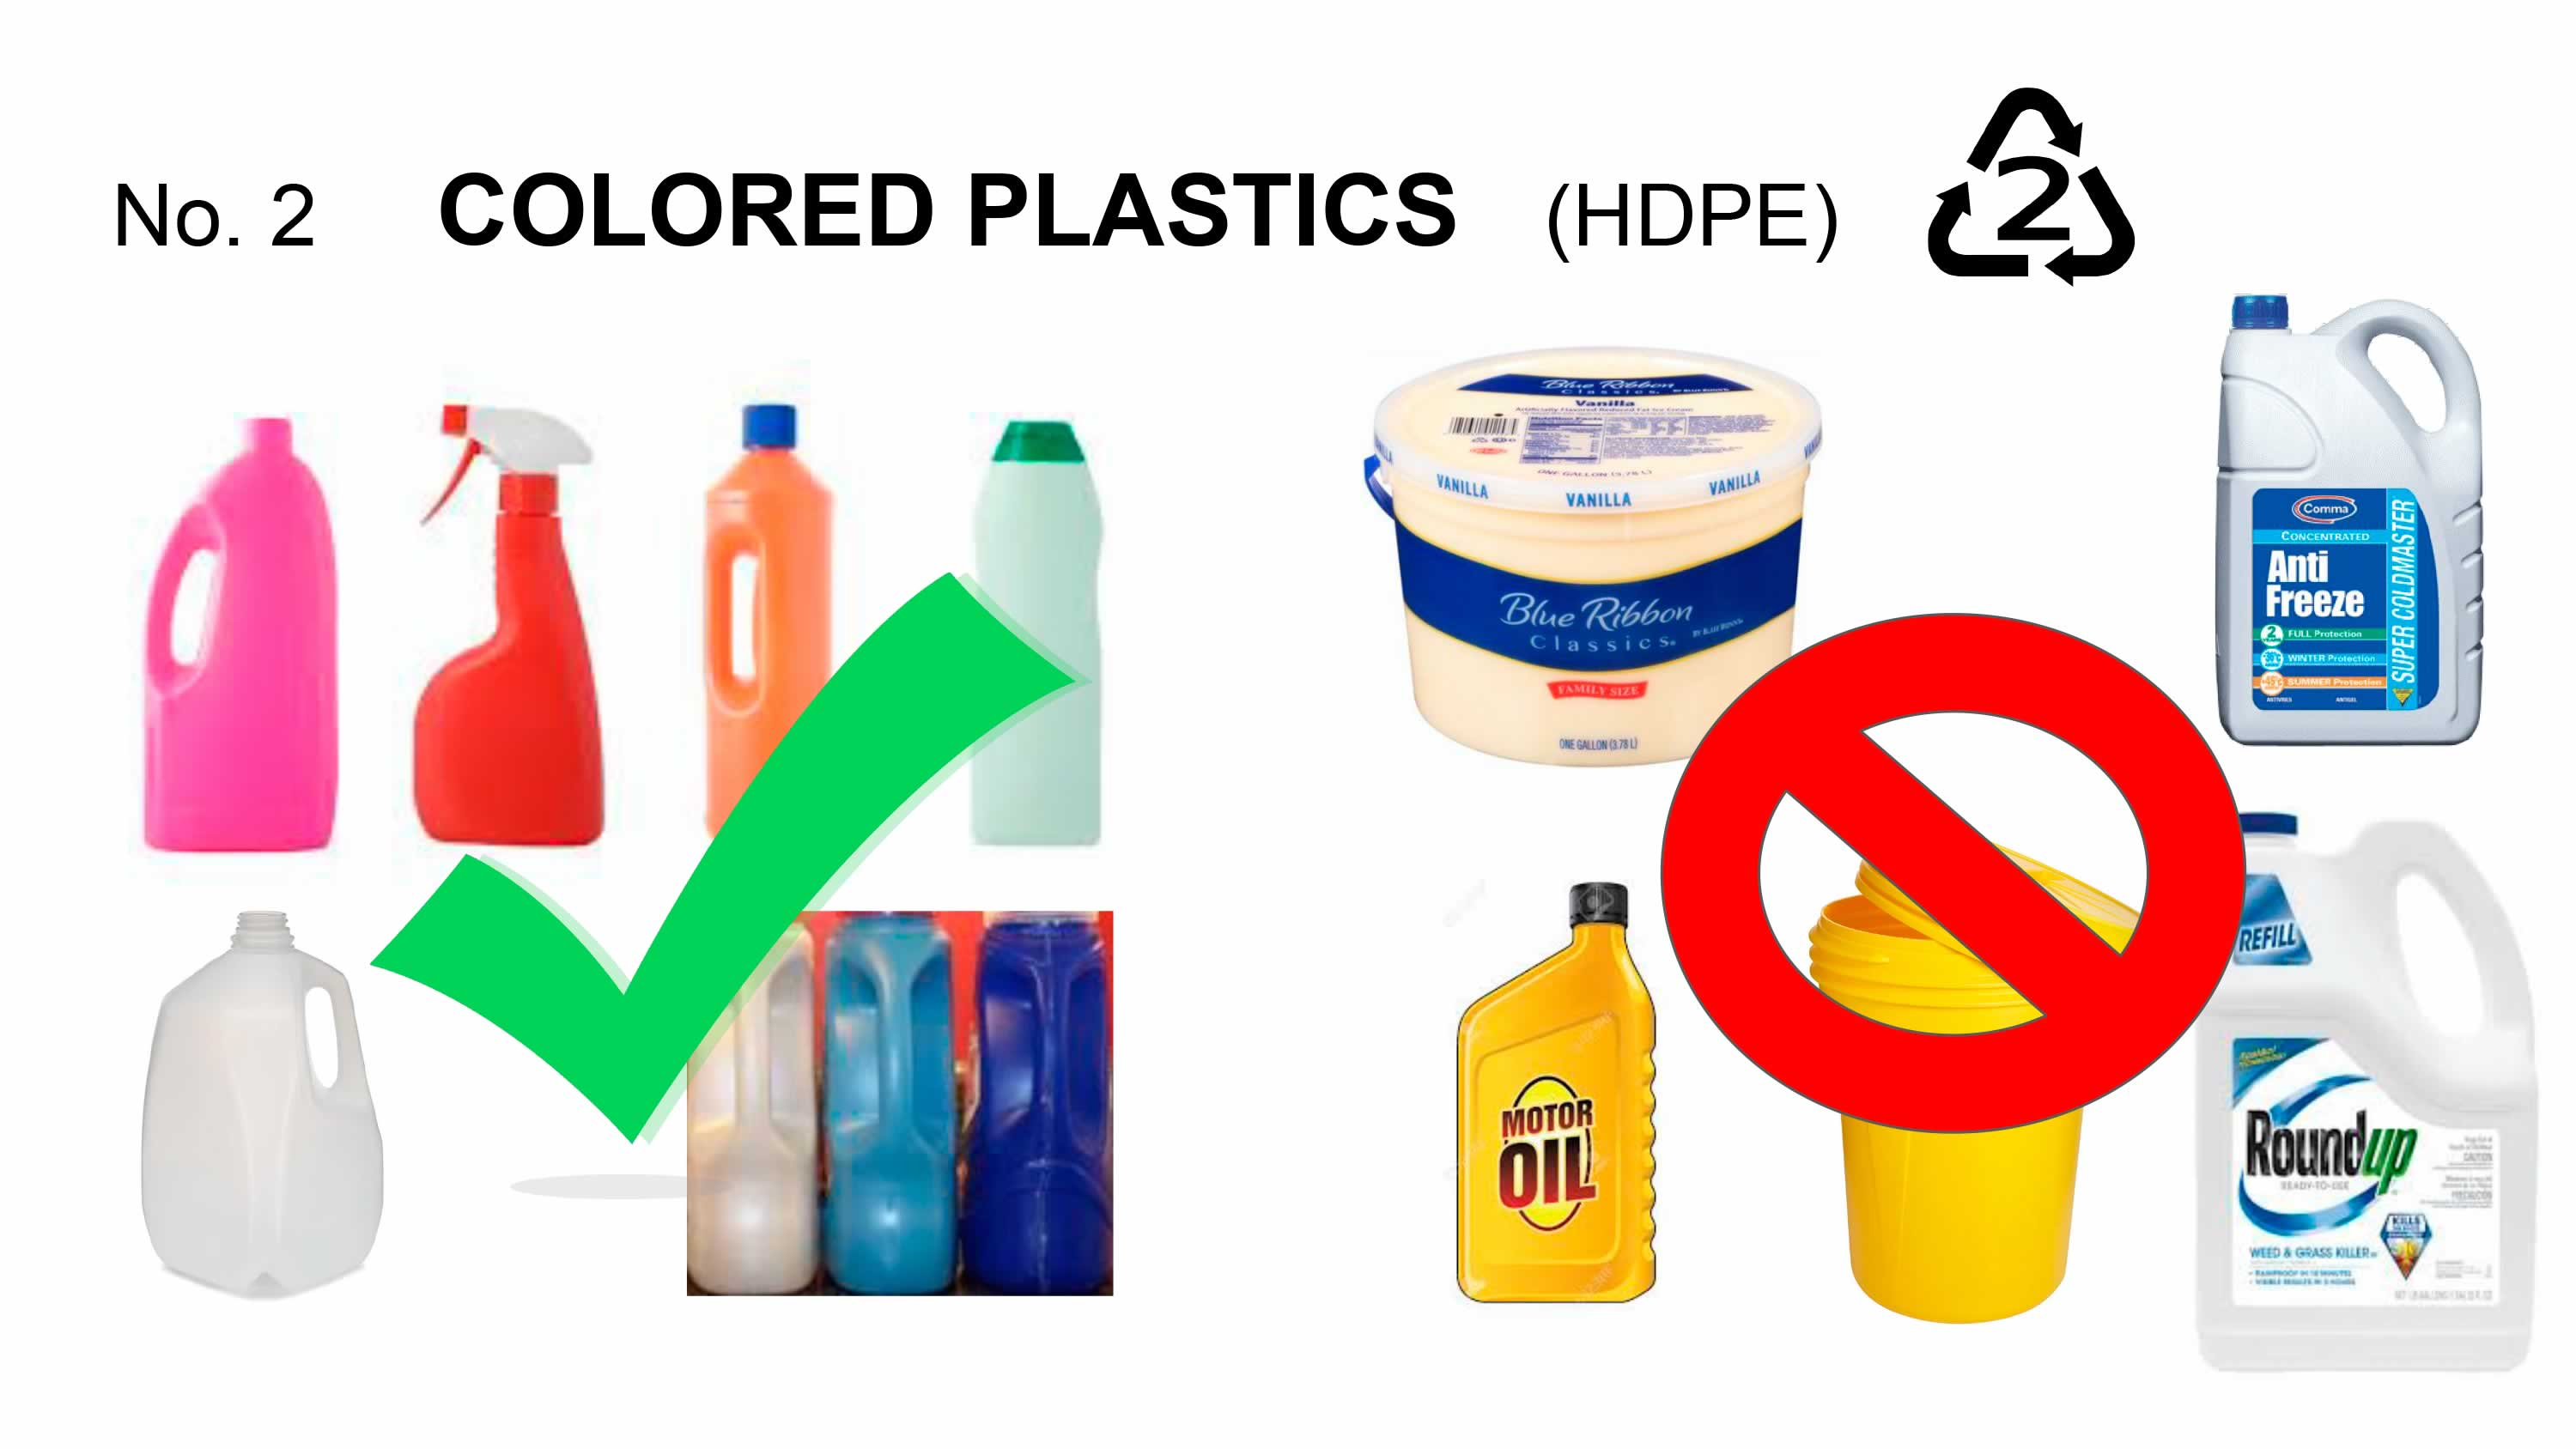 No. 2 Colored Plastics  HDPE